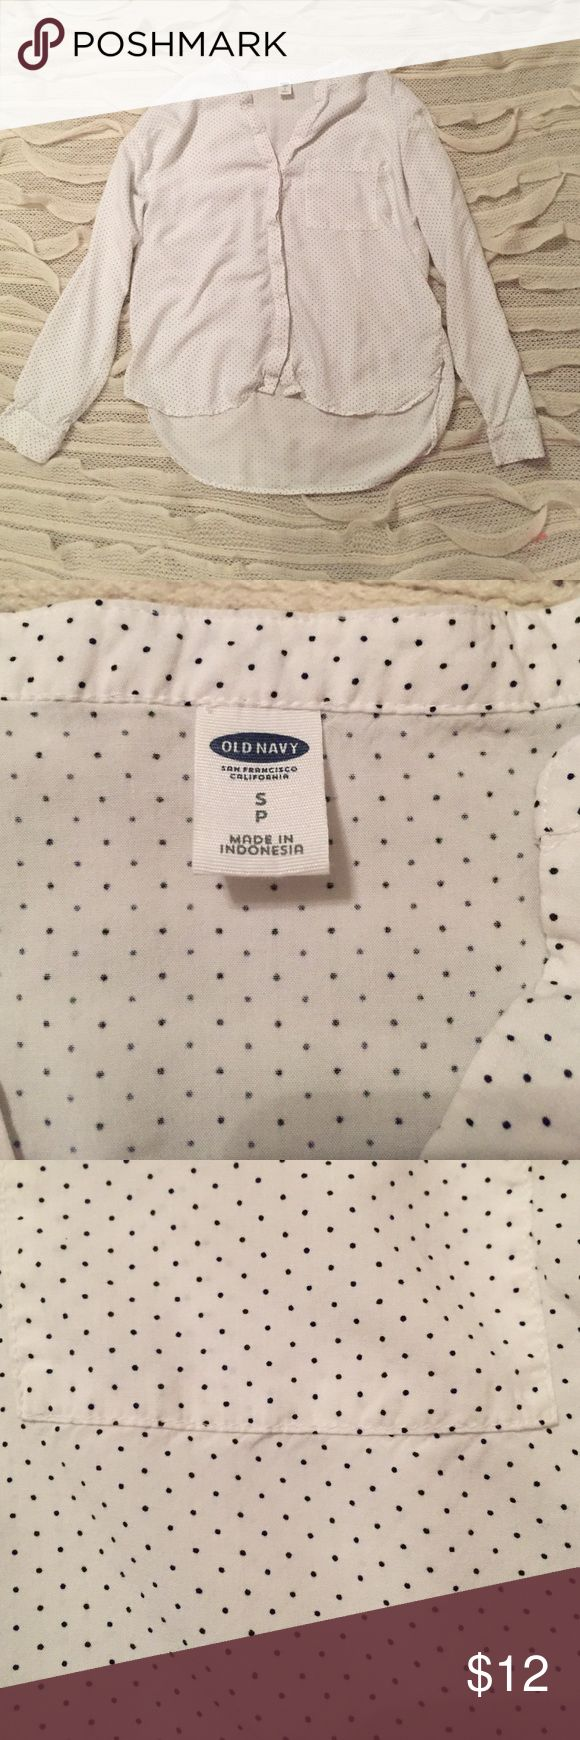 Old Navy long sleeve top Old Navy long sleeve top. White with blue polka dots. Good used condition. It is longer in the back than the front. Old Navy Tops